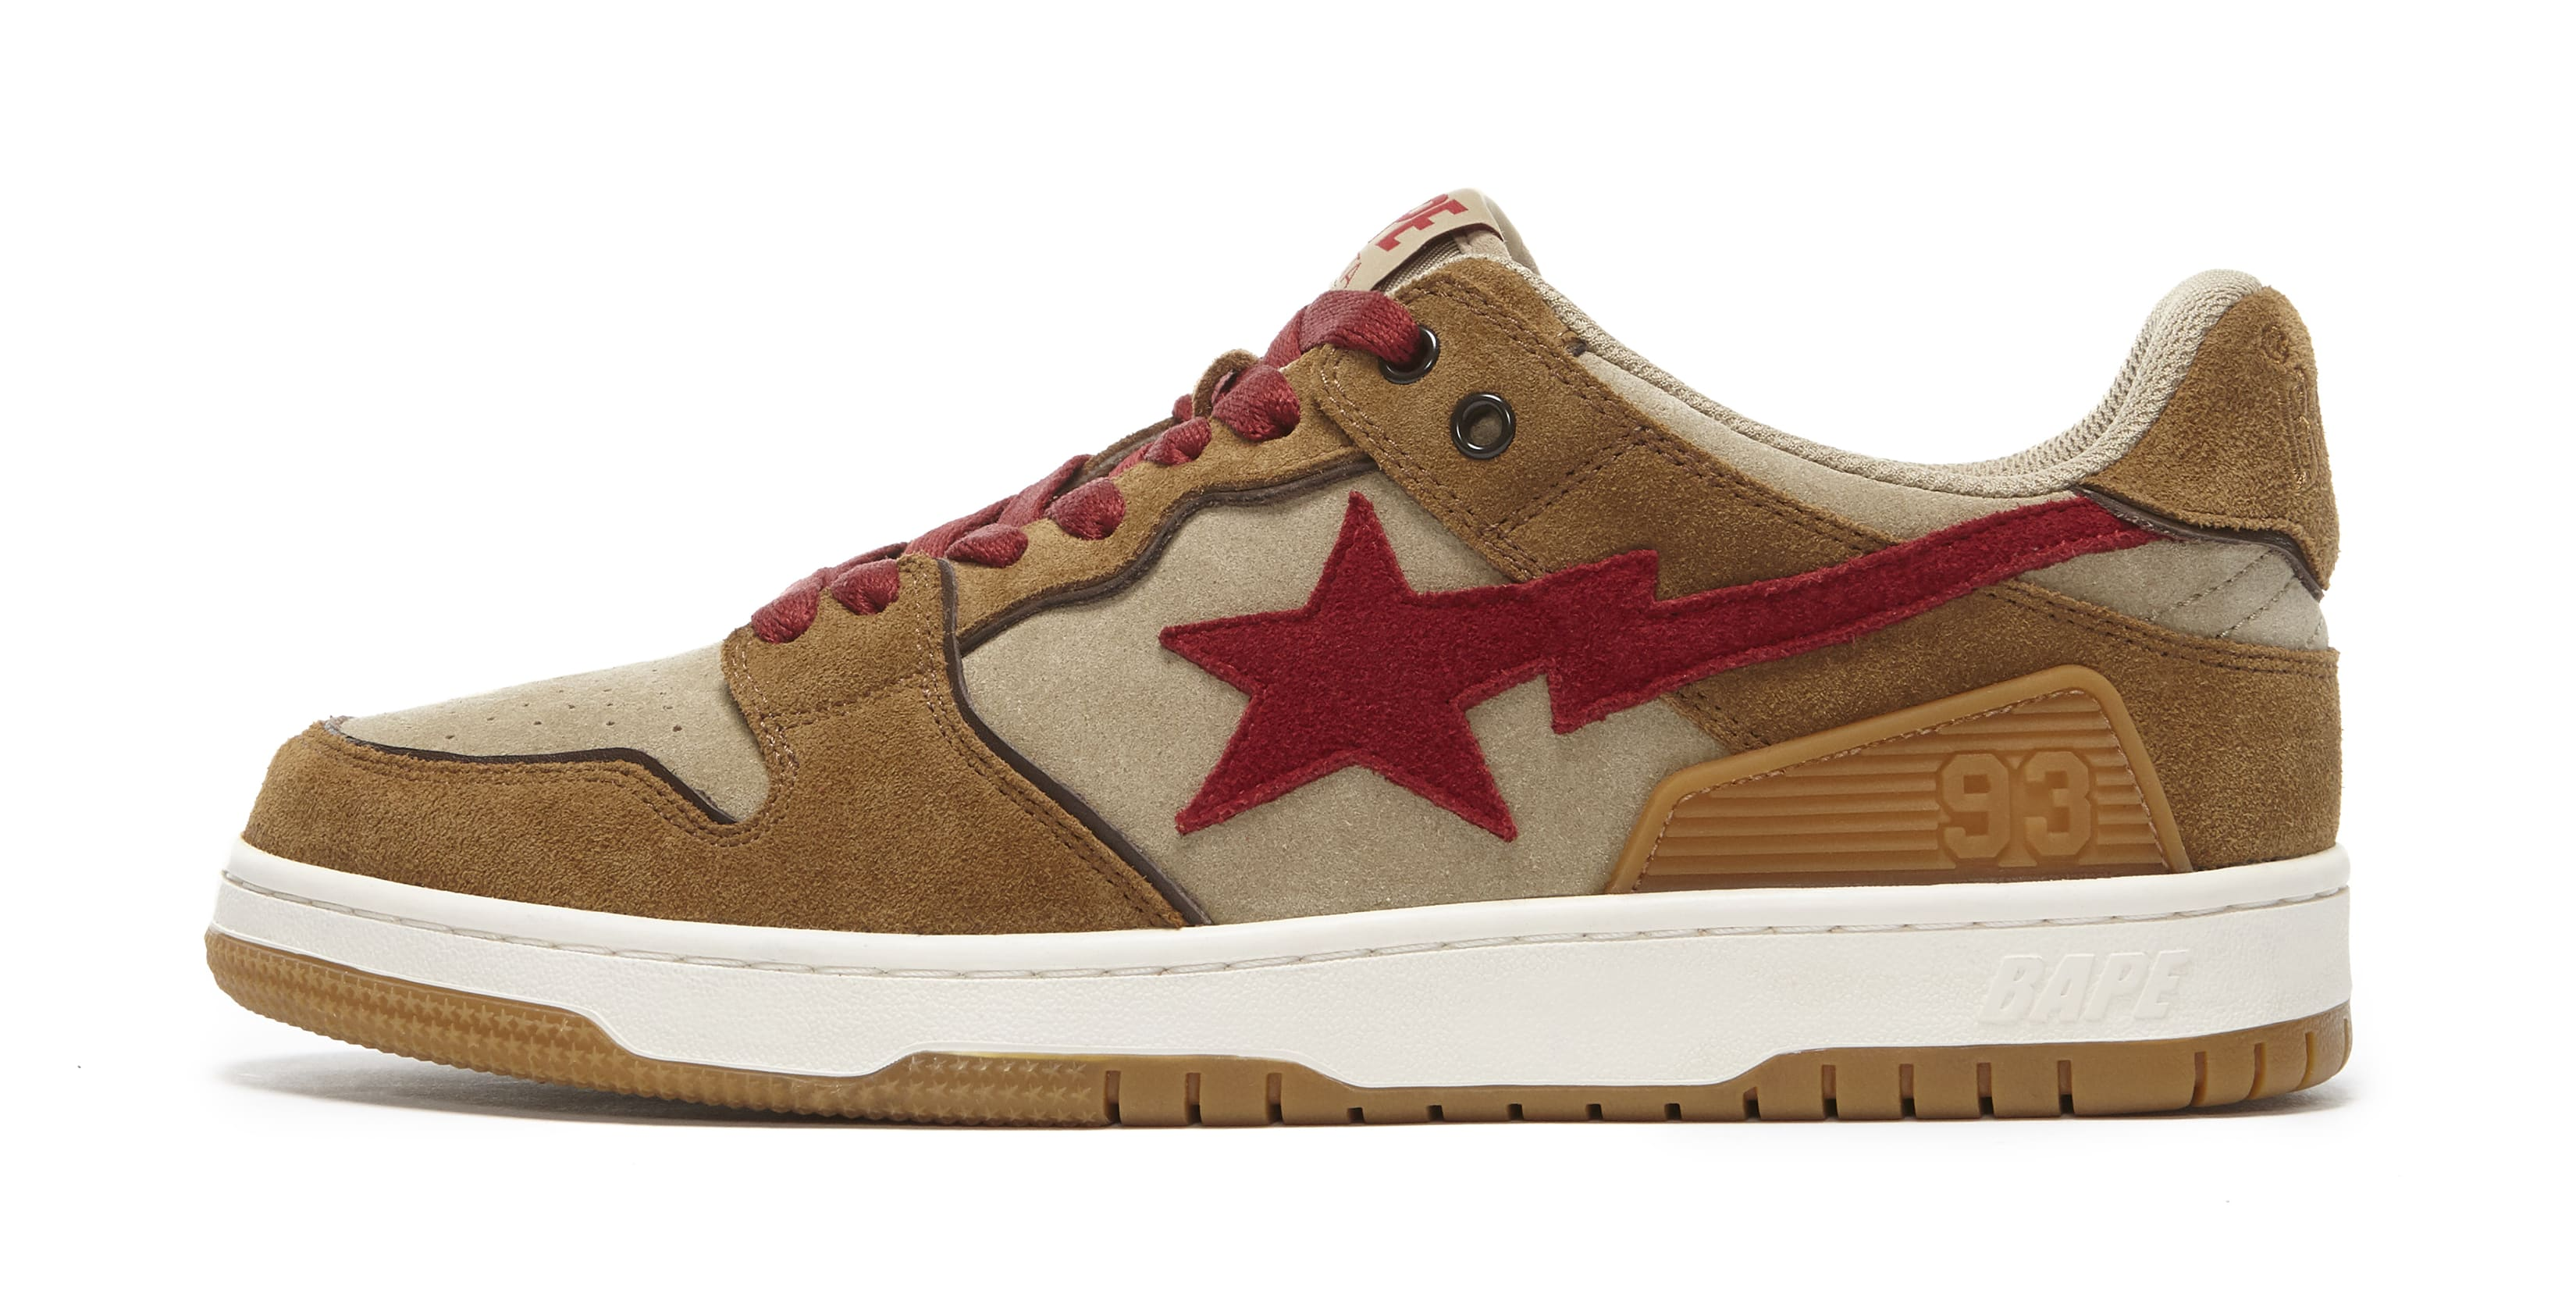 Bape Sk8 Sta Wheat and Red Lateral